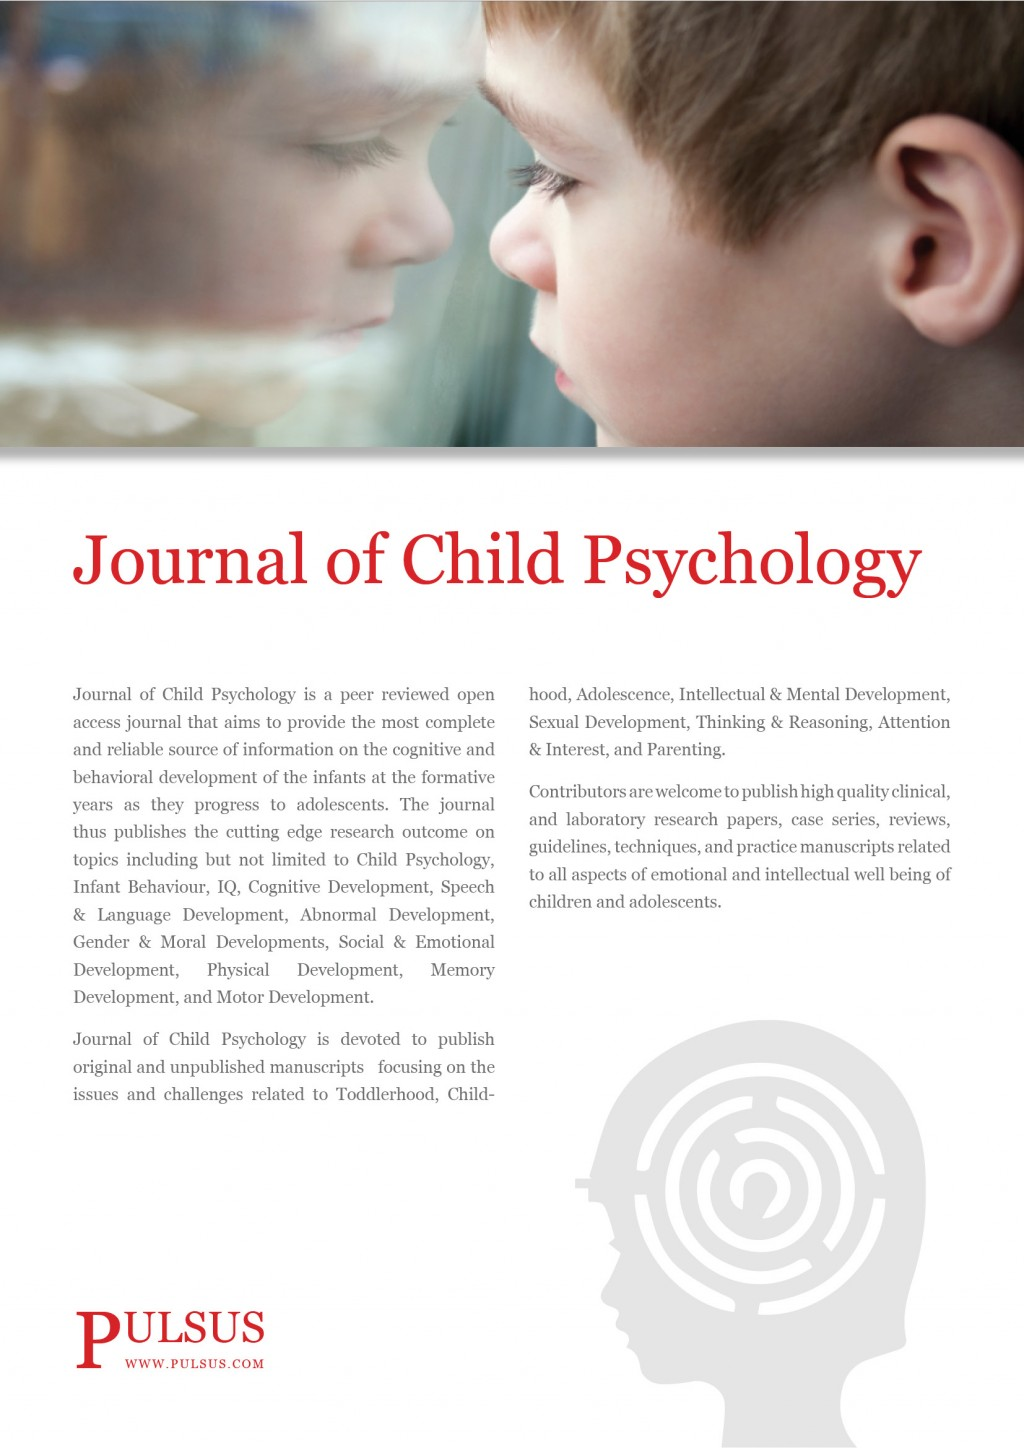 001 Journal Of Child Psychology Flyer Research Paper Articles On Wondrous Development Large